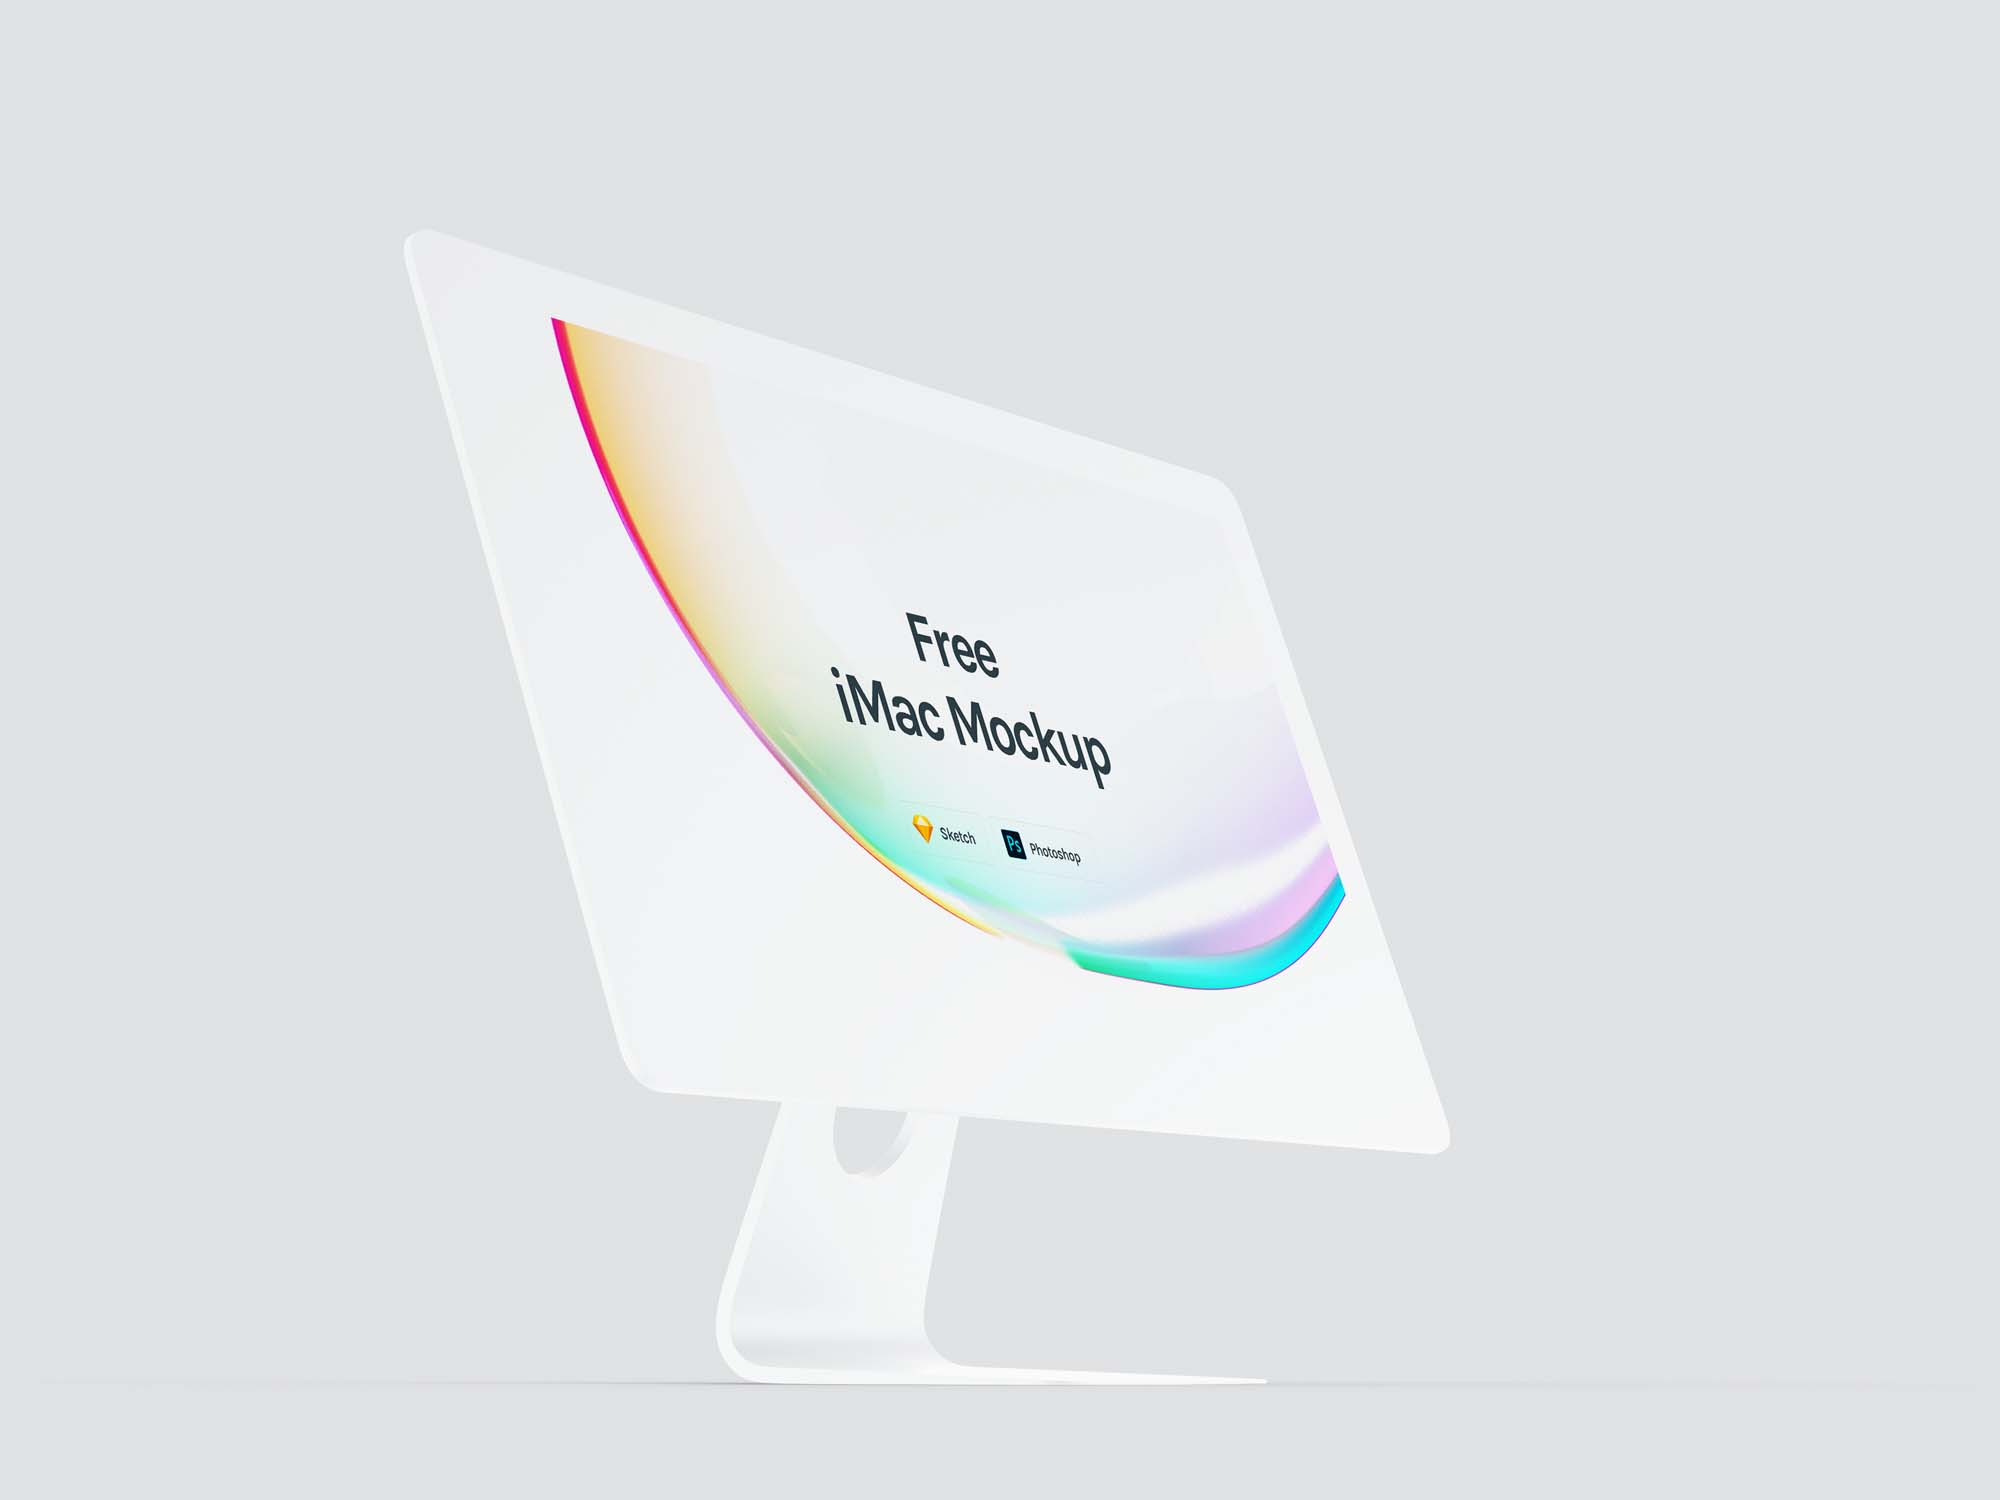 Perspective Apple iMac Mockup 2